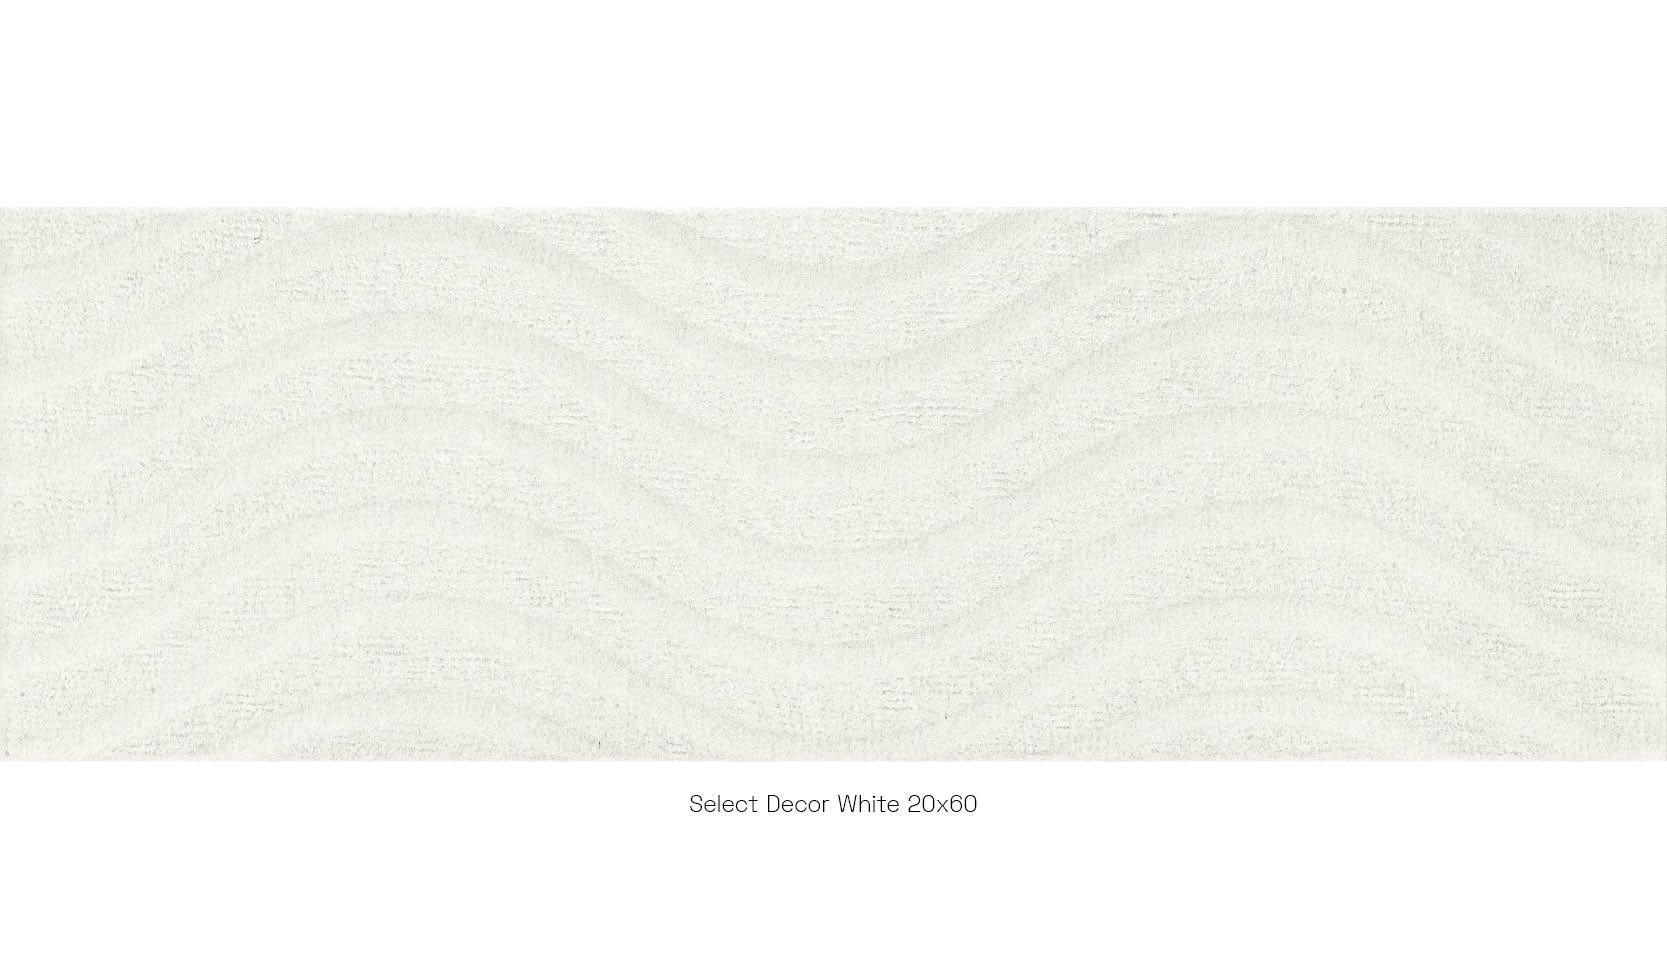 Select Decor White 20 x 60